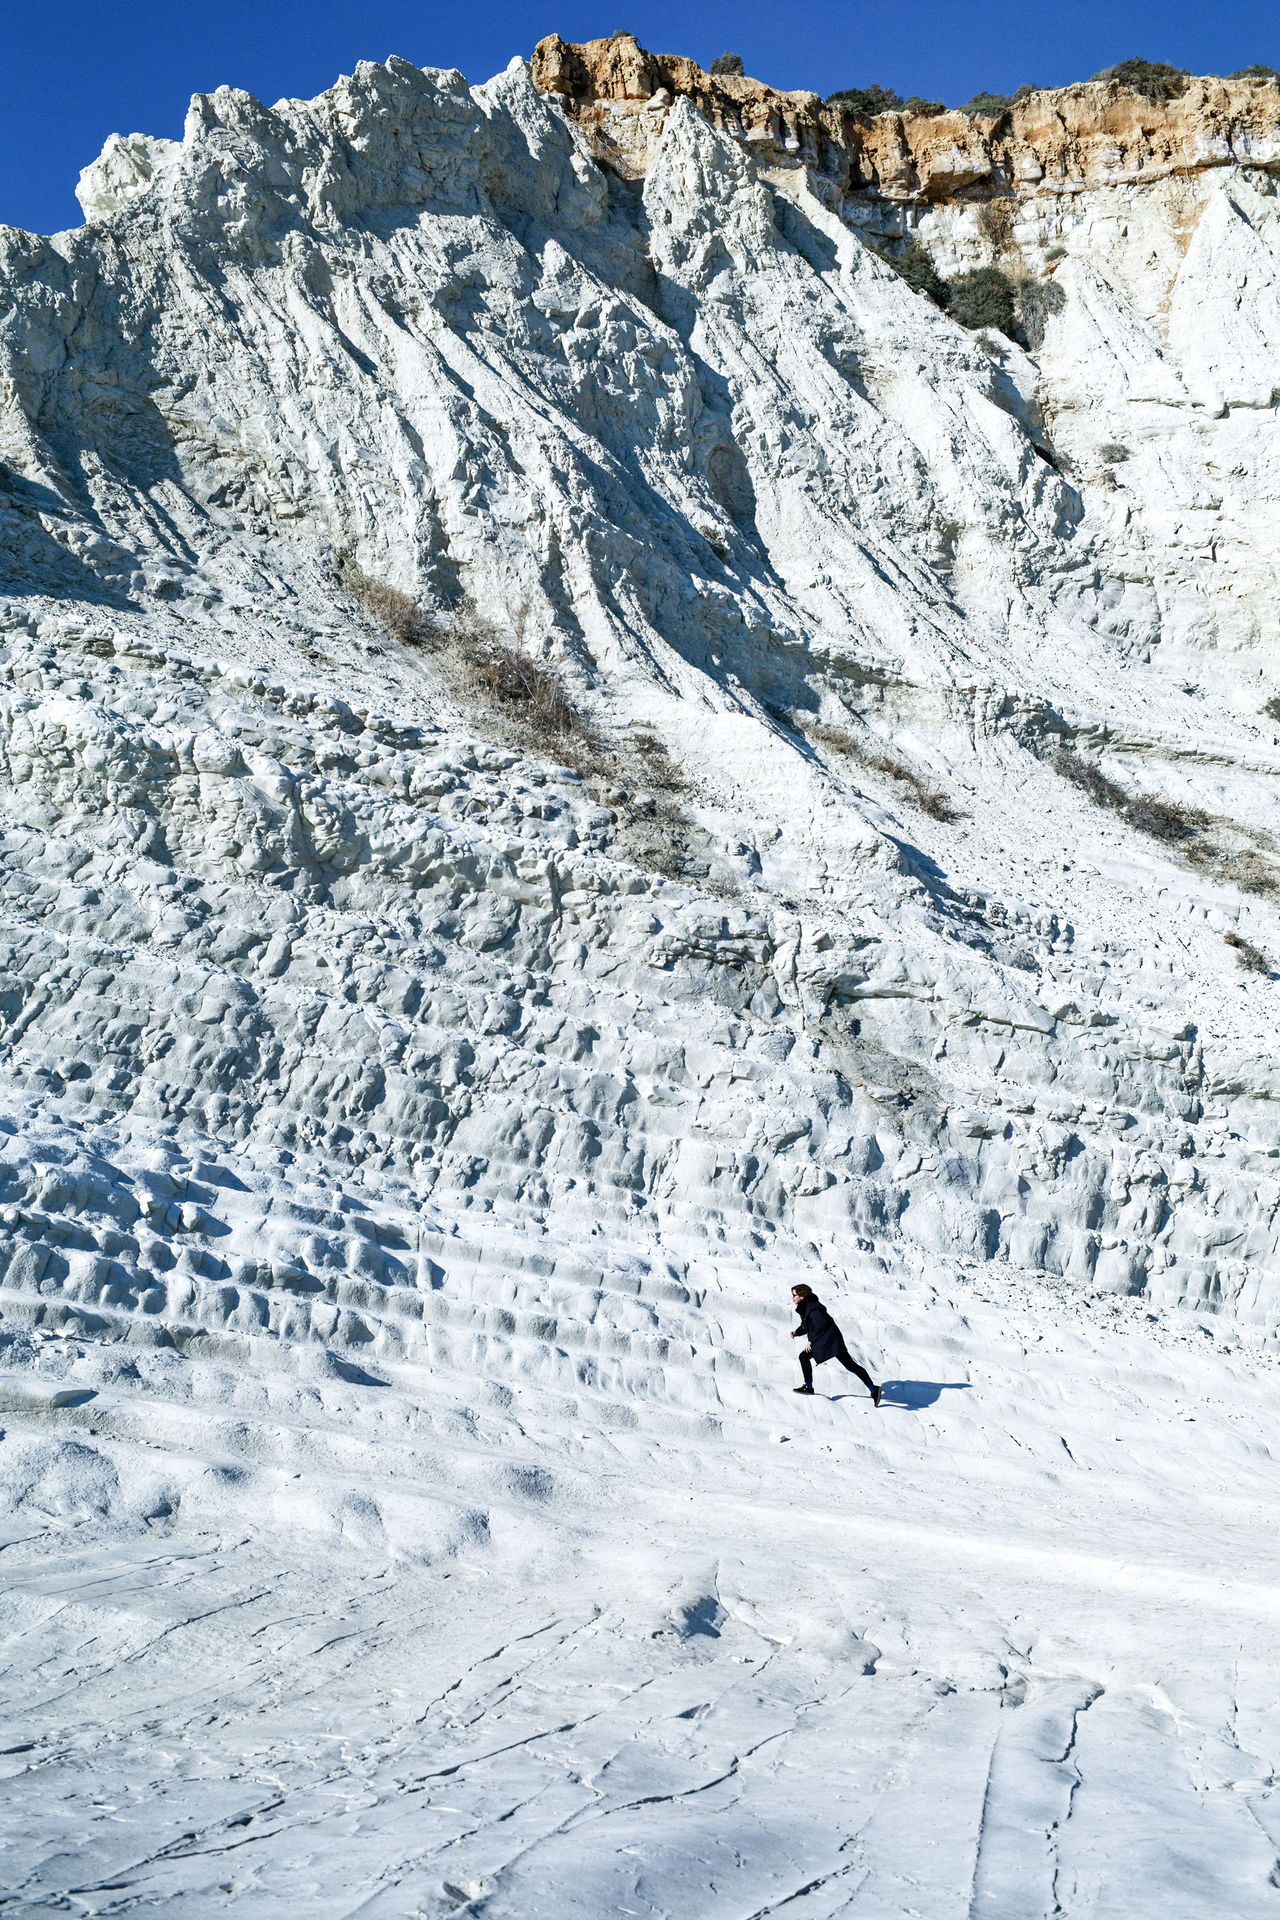 Adventure Beauty In Nature Cold Temperature Day EyeEmNewHere Italia Italy Lifestyles Mountain Mountain Range Nature One Person Outdoors Real People Run Scala Dei Turchi Scenics Sicilia Sicily Sicily, Italy Ski Holiday Vacations Winter